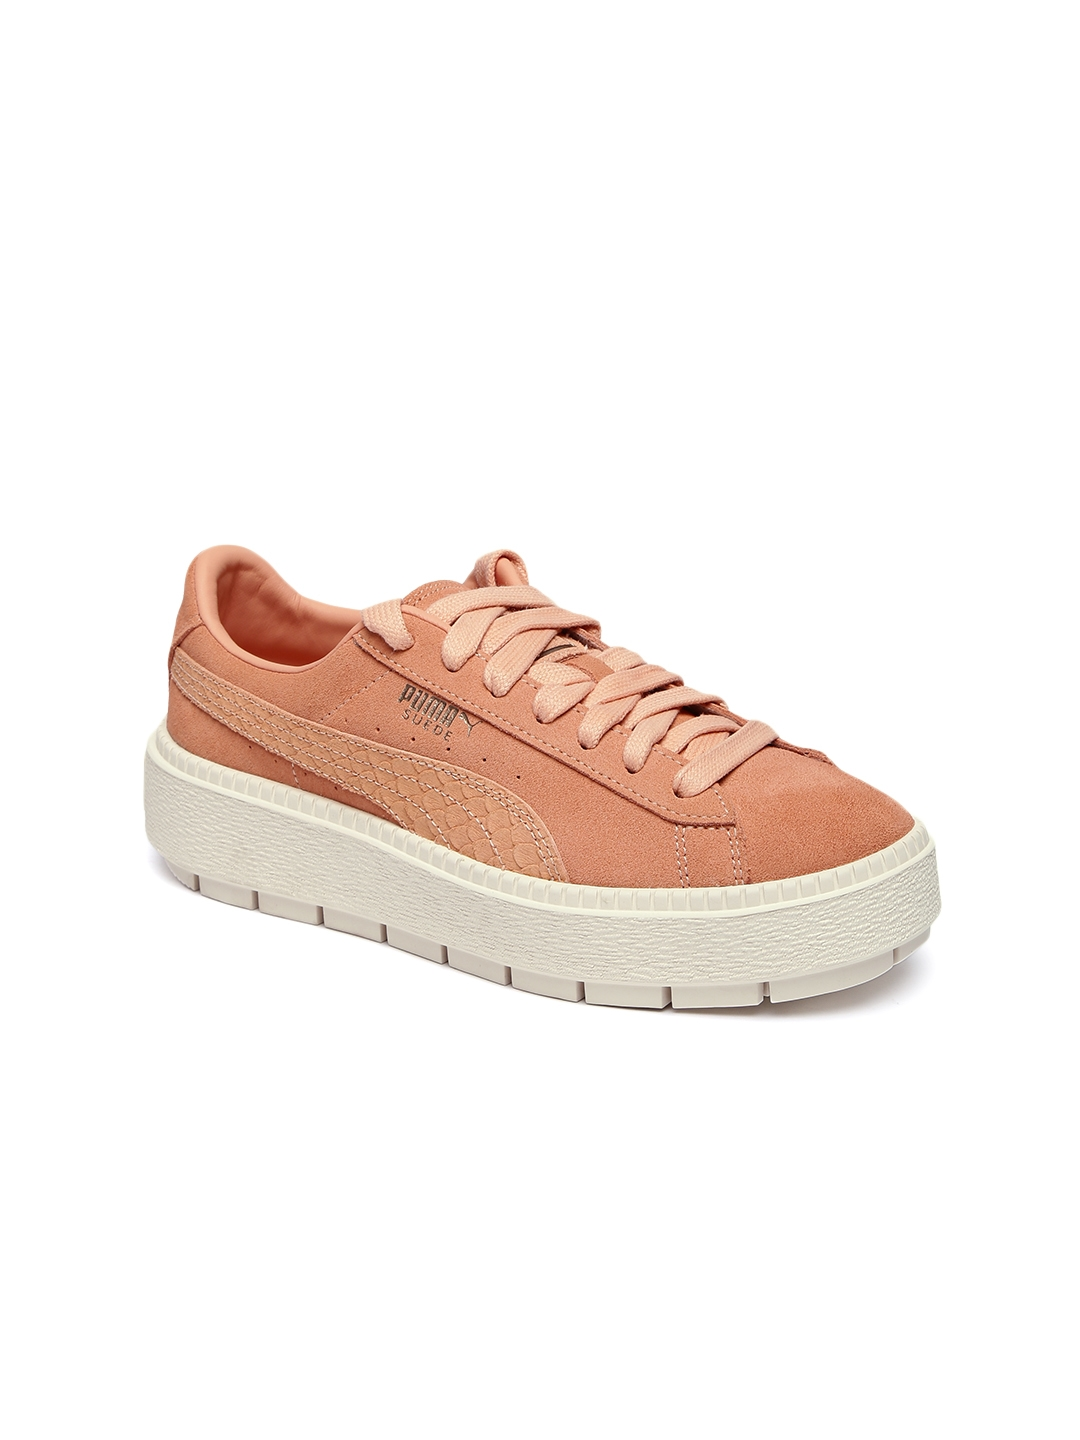 be7891ebe3a9d7 Buy Puma Women Coral Suede Platform Trace Animal Sneakers - Casual ...